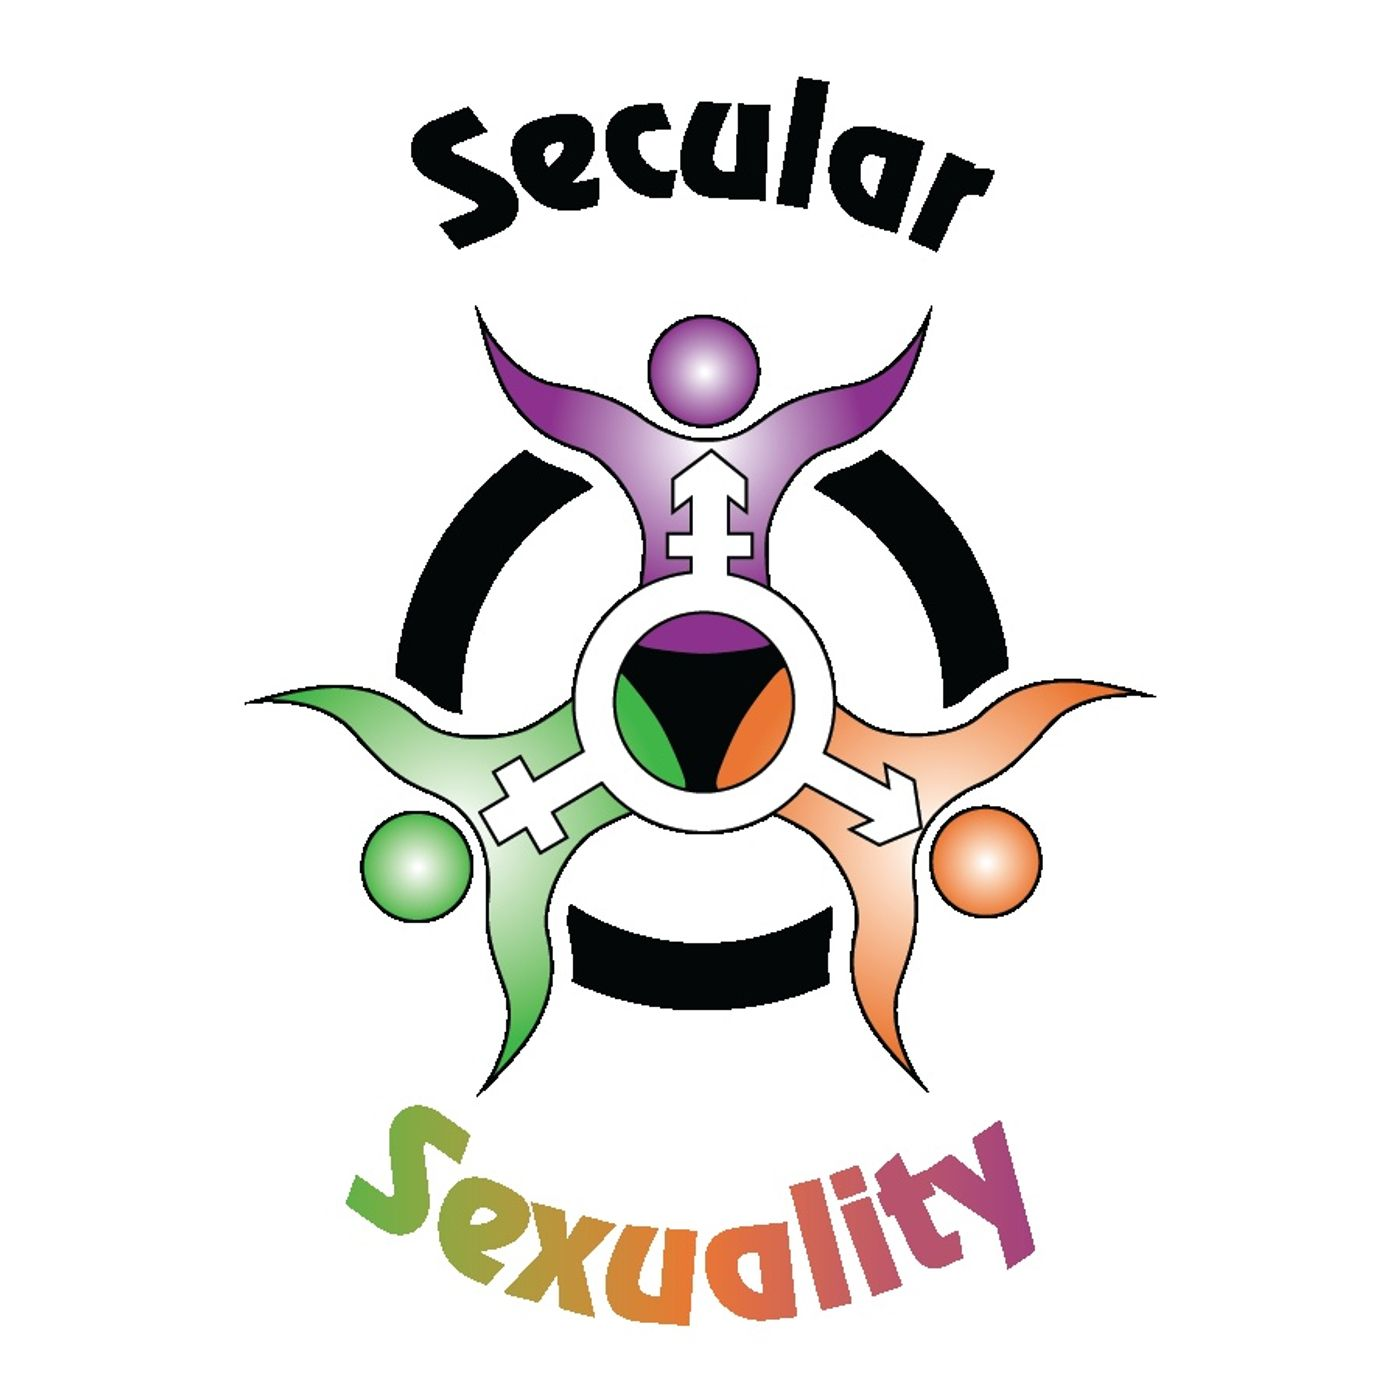 Secular Sexuality